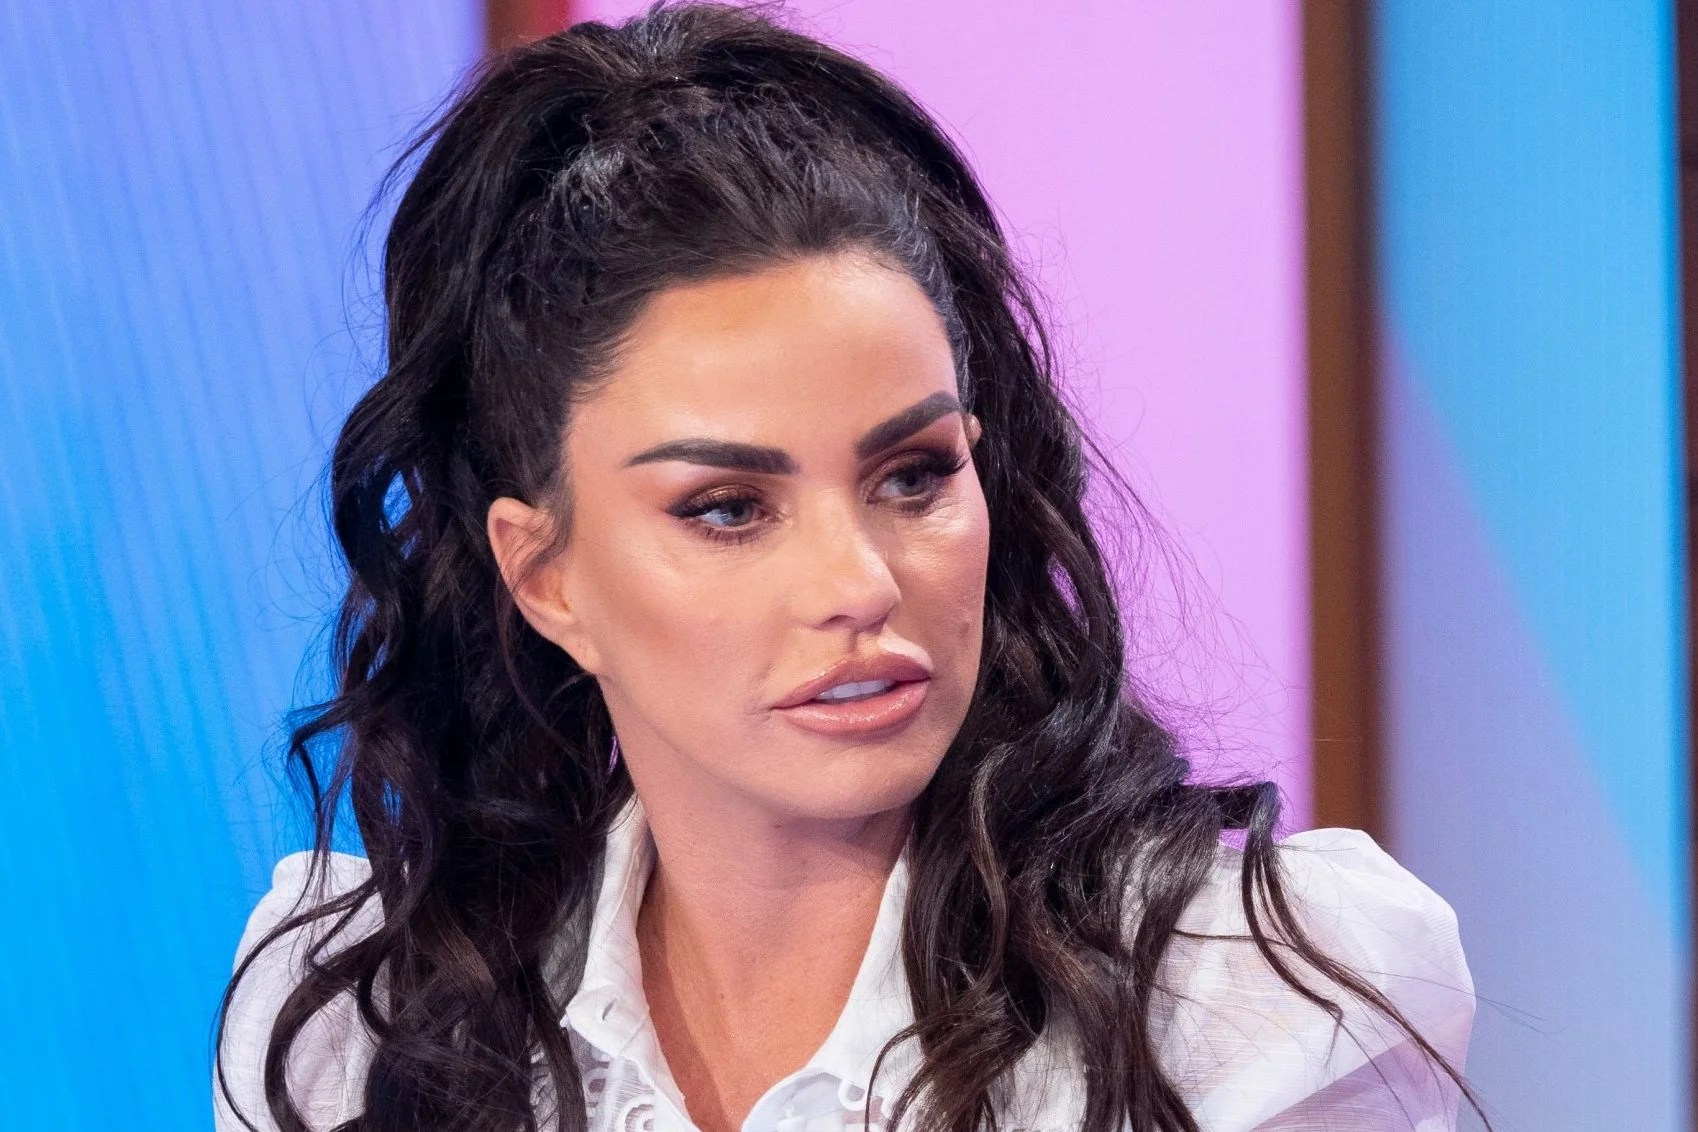 Katie Price Contacting Police After EBay Listing Was Taken Down Following Cruel Comments About